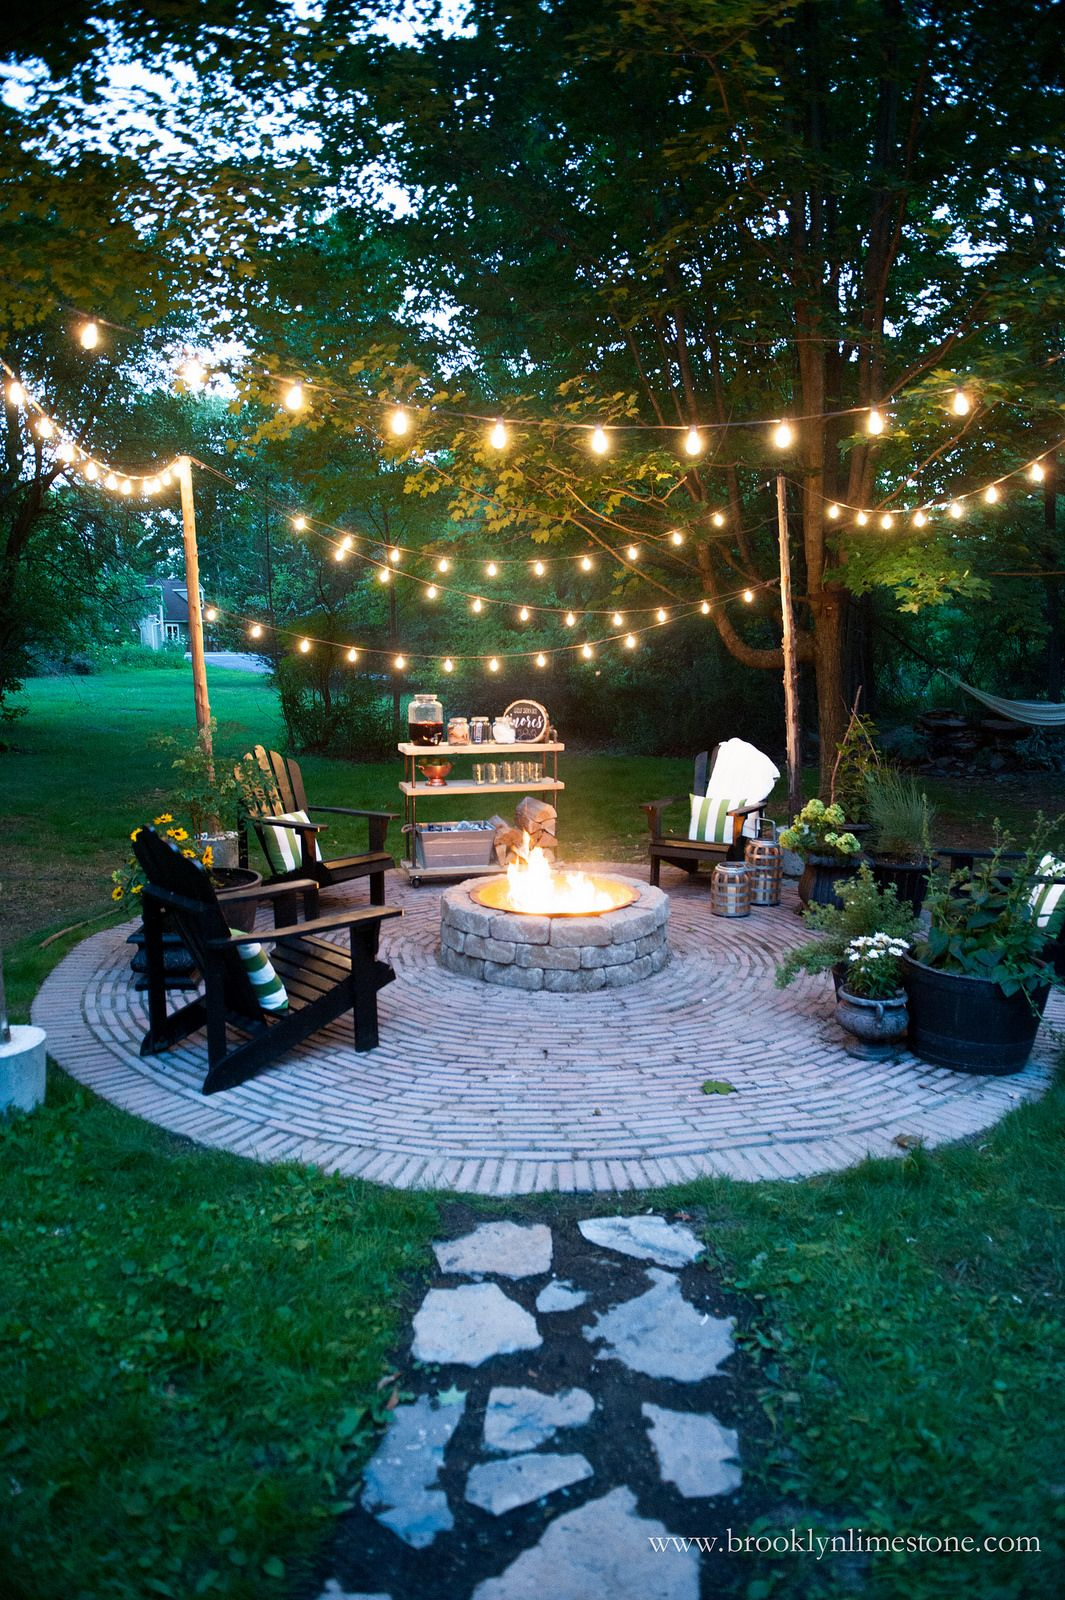 Firepit Patio Country Cottage Diy Circular Outdoor Entertaining intended for 15 Awesome Initiatives of How to Make Outdoor Ideas For Backyard